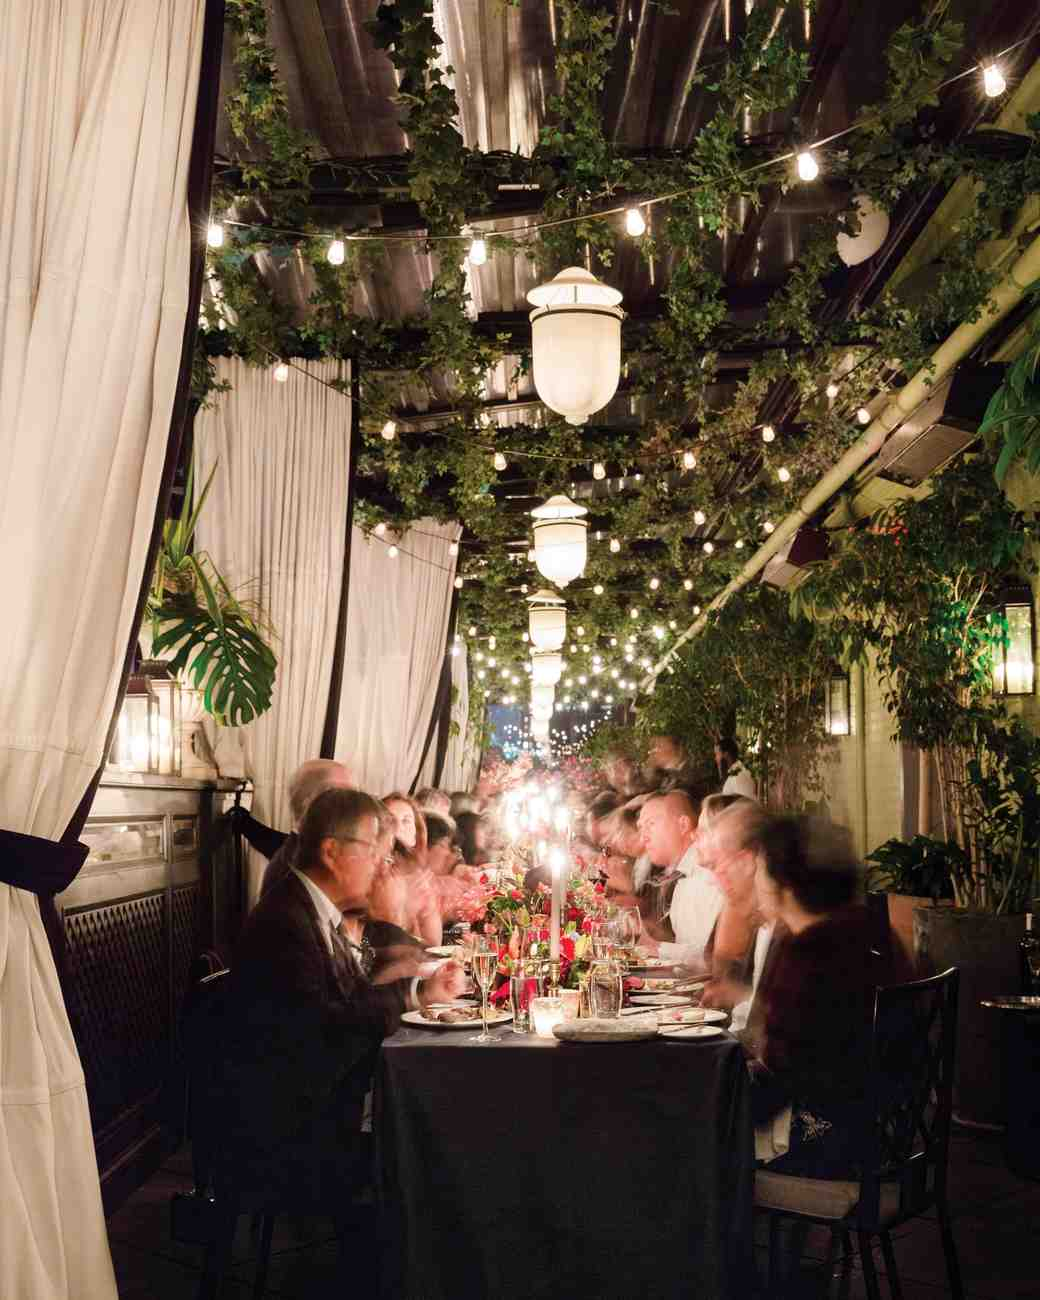 30 Stunning And Creative String Lights Wedding Decor Ideas: 47 Hanging Wedding Décor Ideas